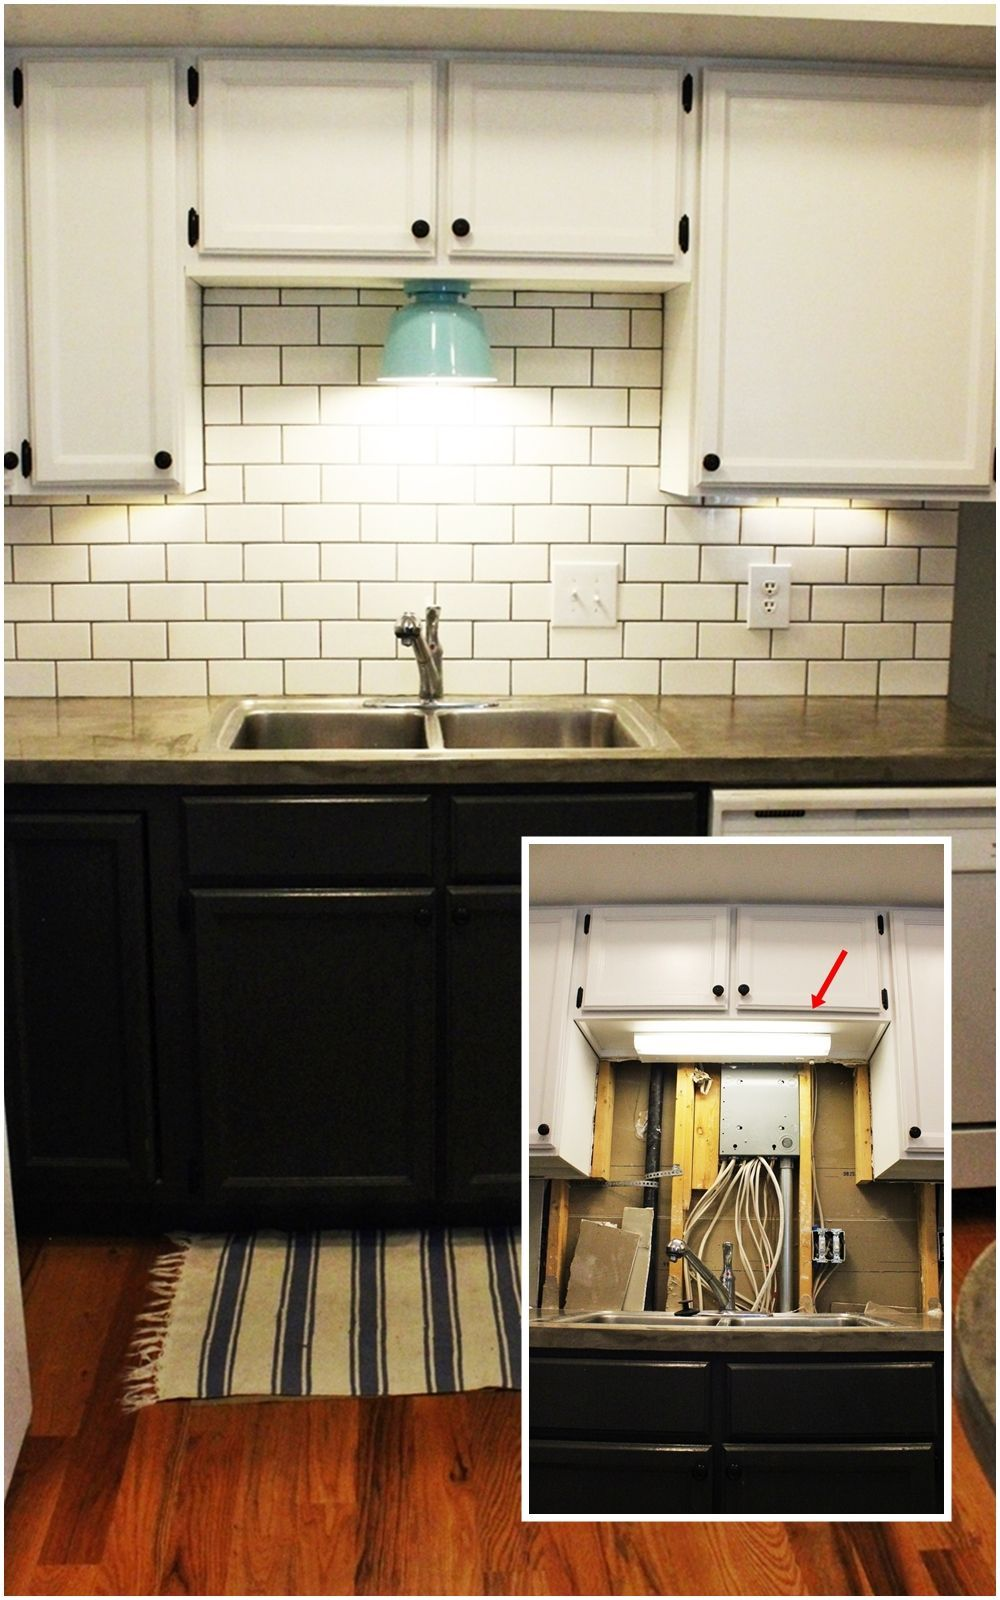 diy kitchen lighting upgrade  led under cabinet lights  u0026 above the sink light diy kitchen lighting upgrade  led under cabinet lights  u0026 above the      rh   homedit com